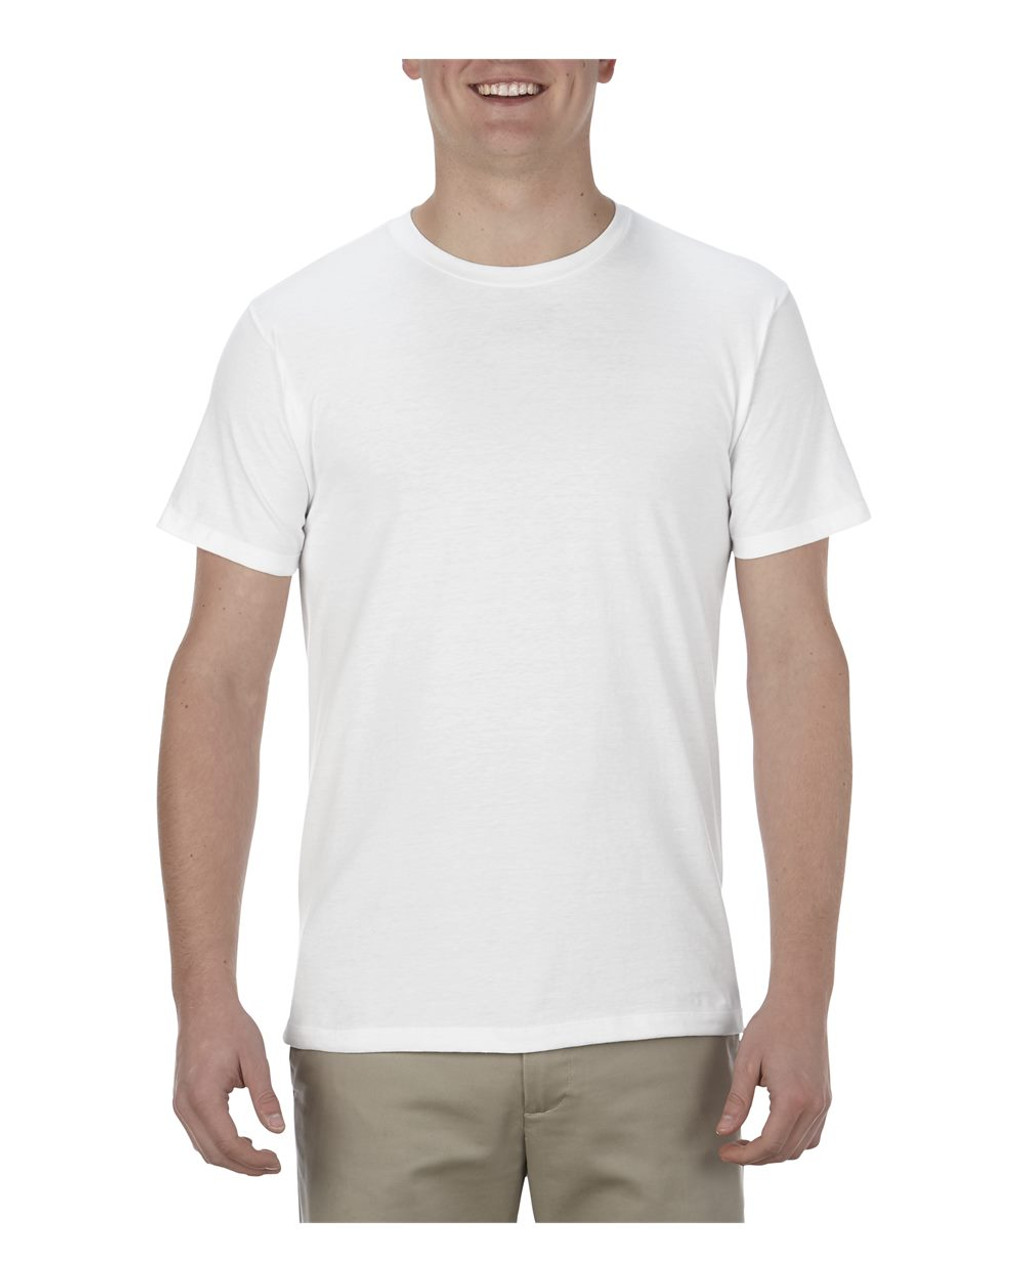 5301N Alstyle Ultimate T-shirt | T-shirt.ca